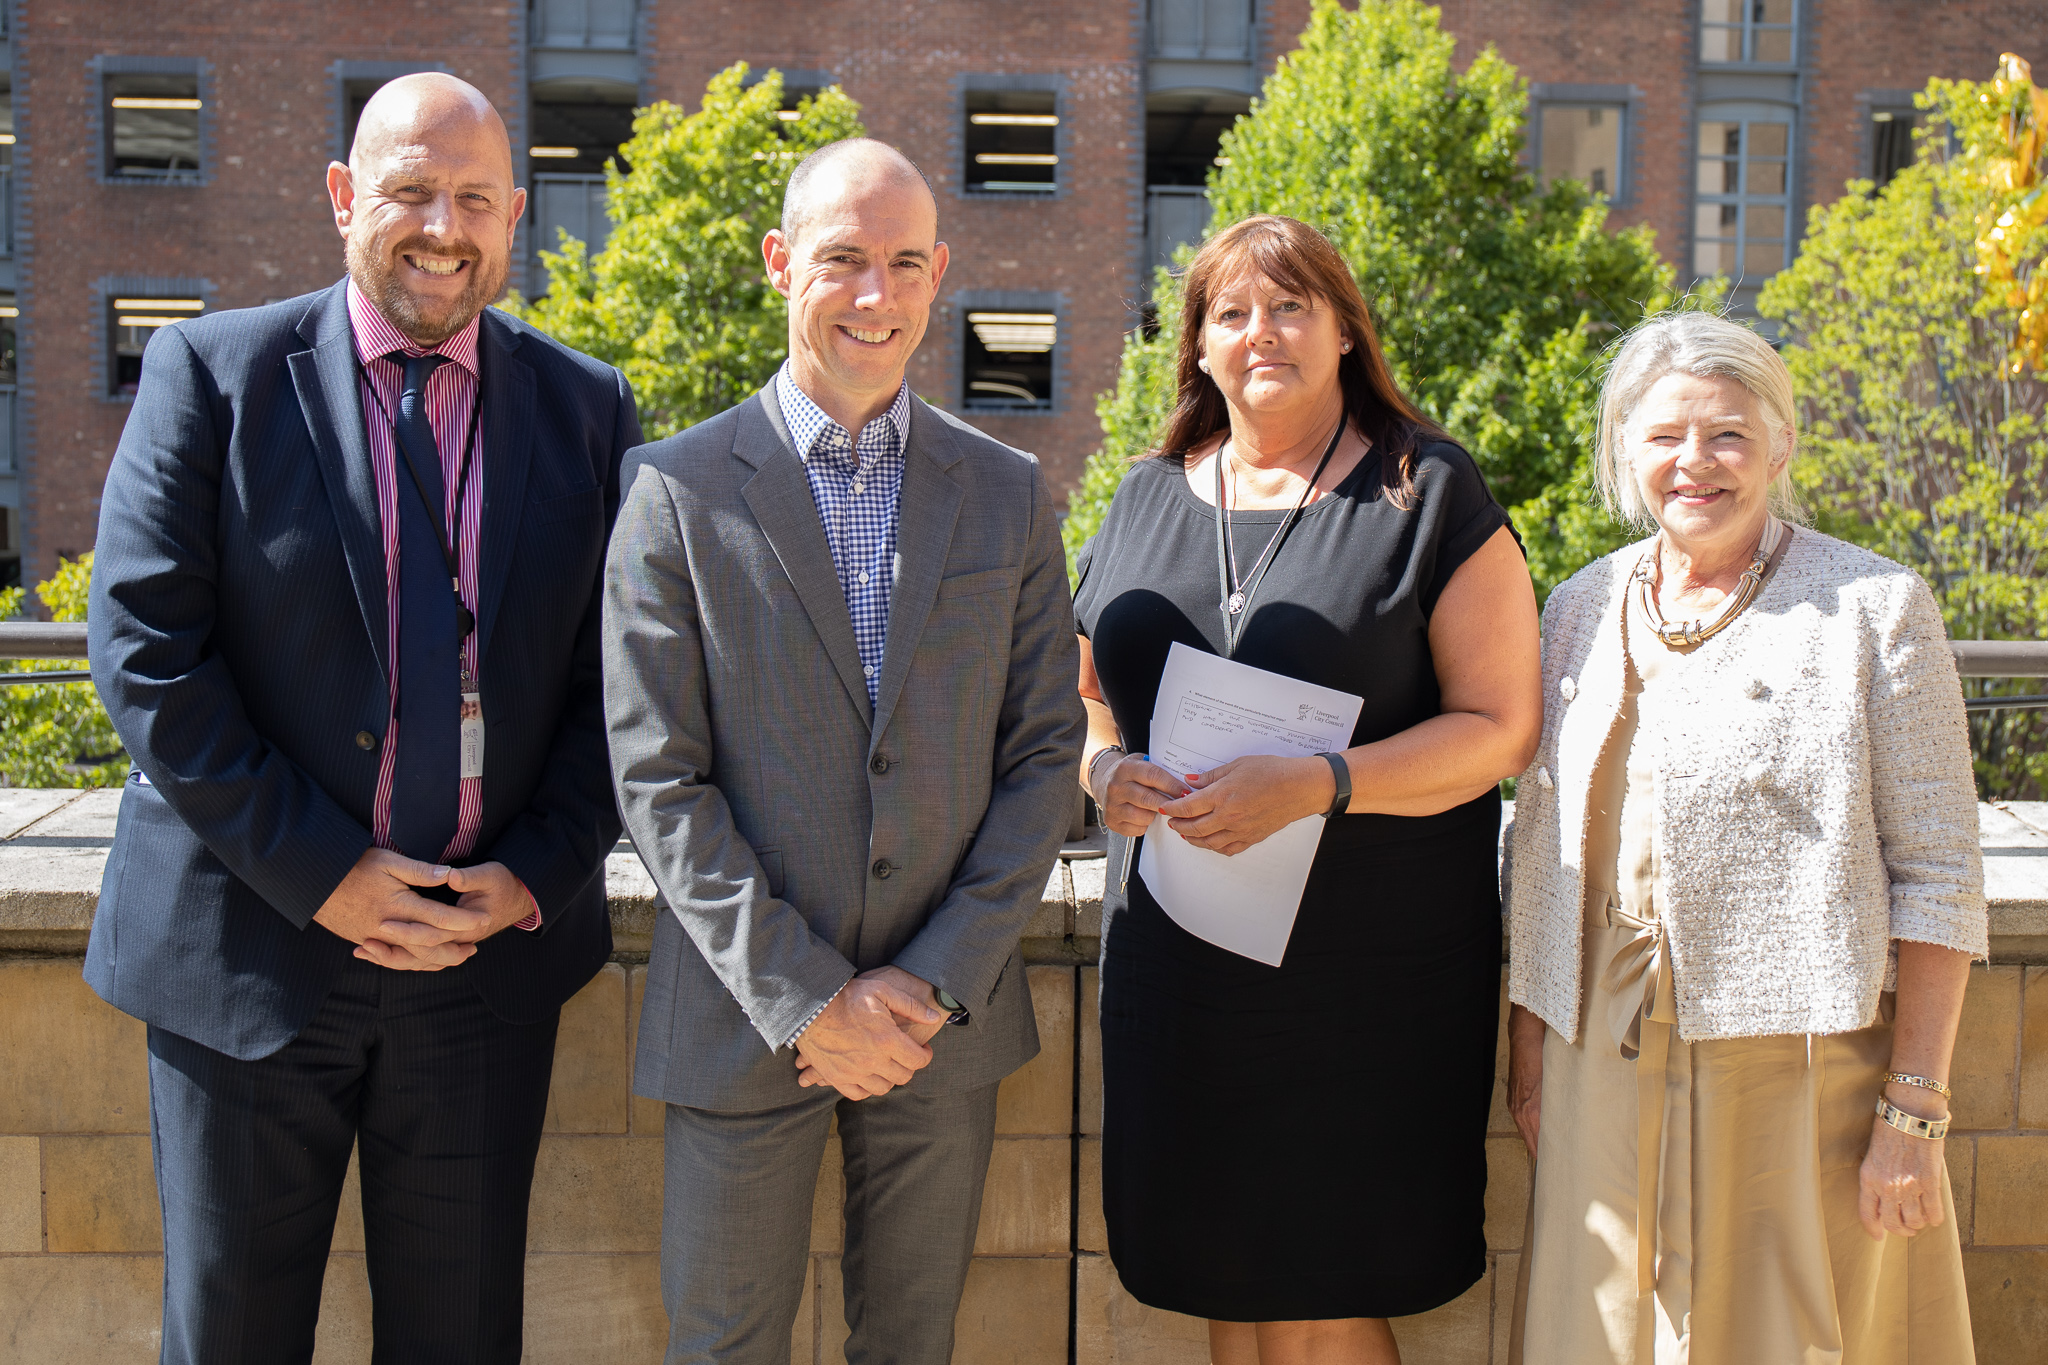 Steve Reddy, Director of Children and Young People's Services, Martin Wilby, Supported Employment Officer, Lynn Newton, Independent Travel Training Team Manager and Cabinet Member for Education, Employment and Skills, Barbara Murray. All from Liverpool City Council.